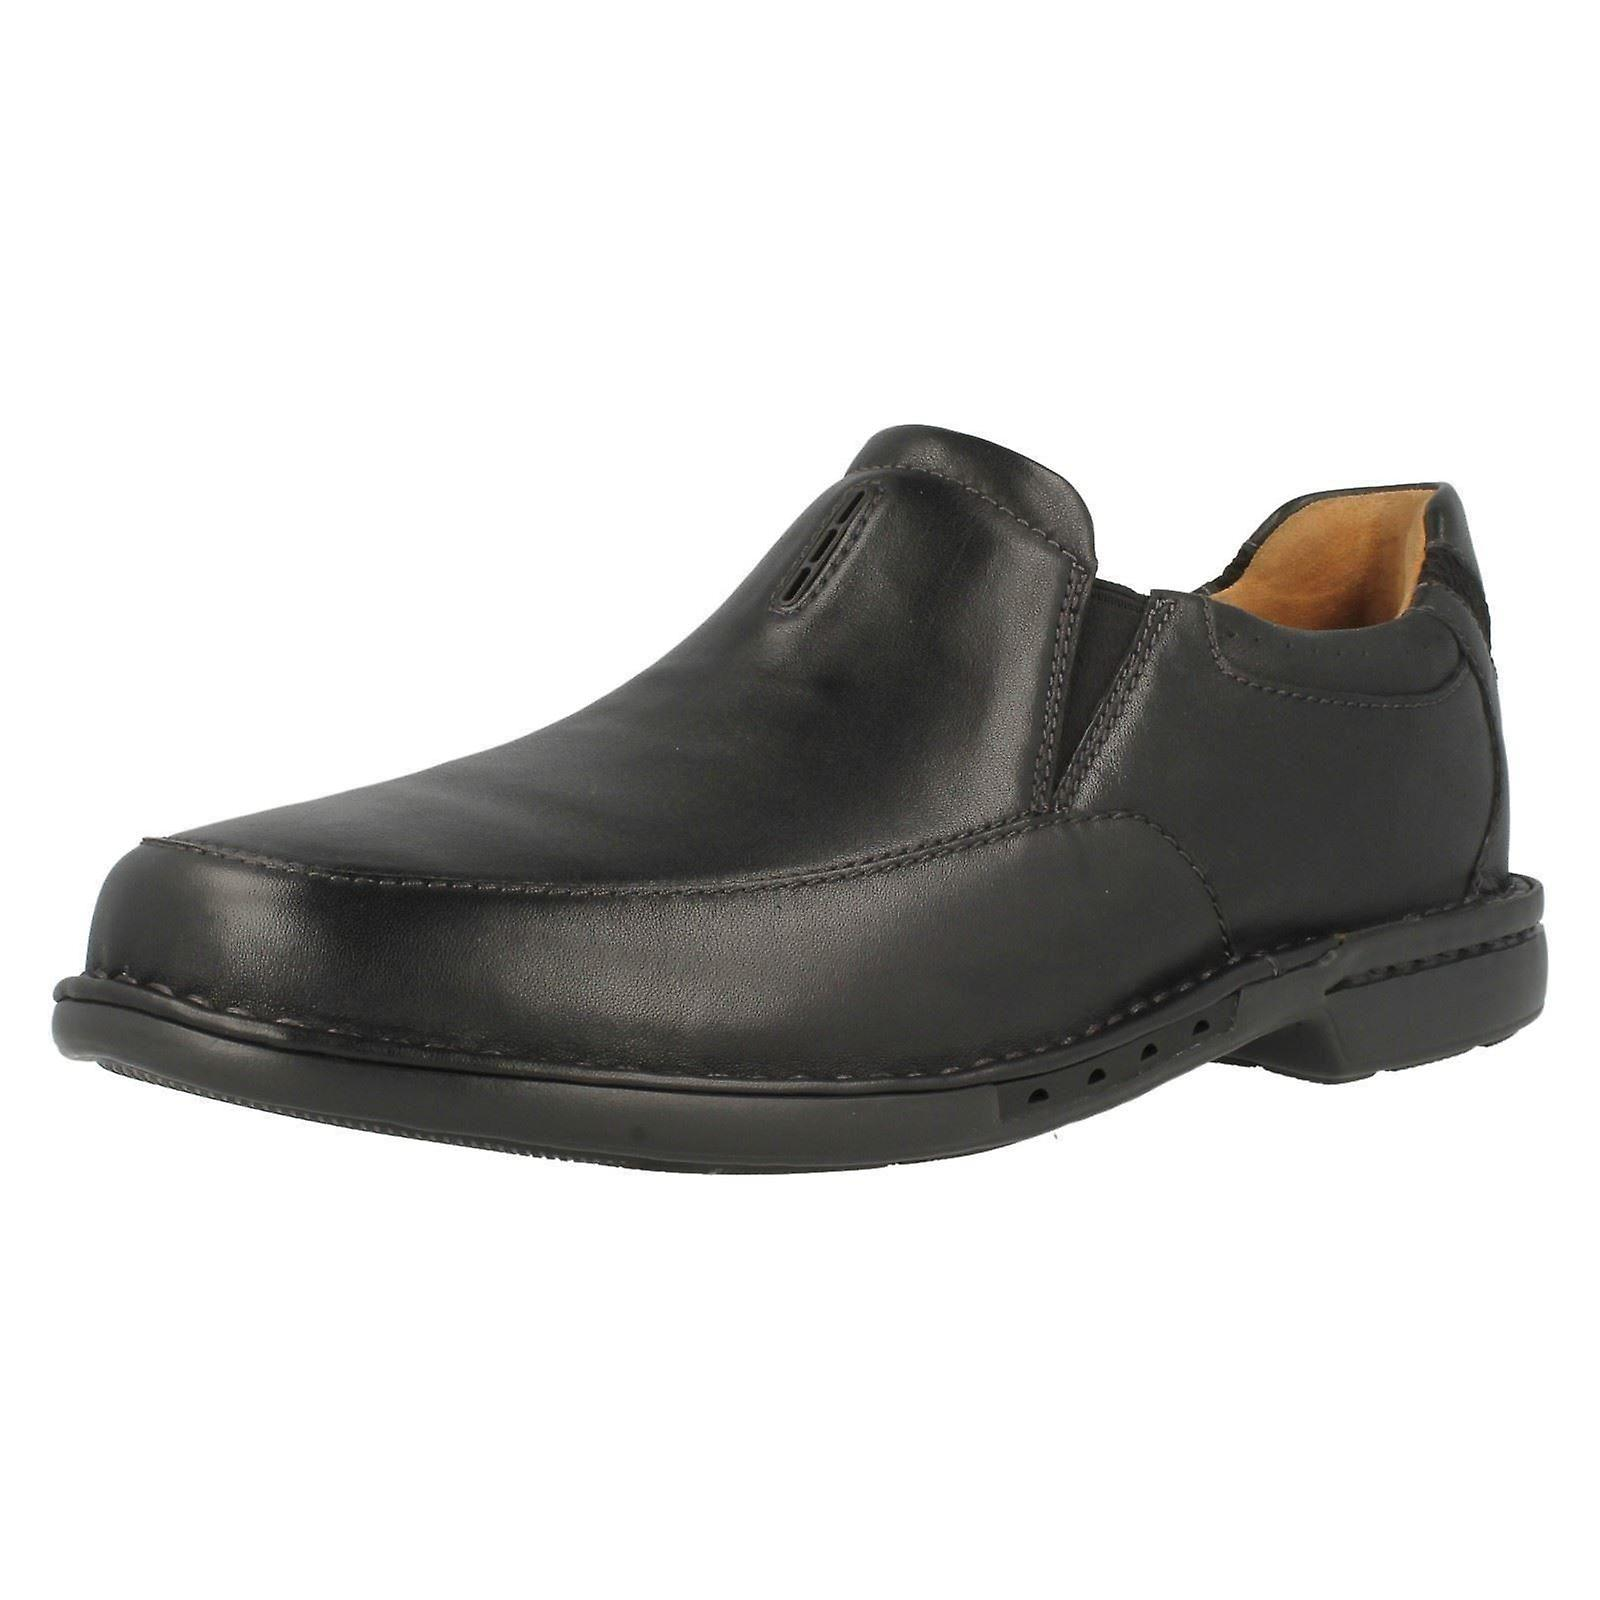 Mens Clarks Slip On Shoes From Unstructured Range 'Uncorner Twin'